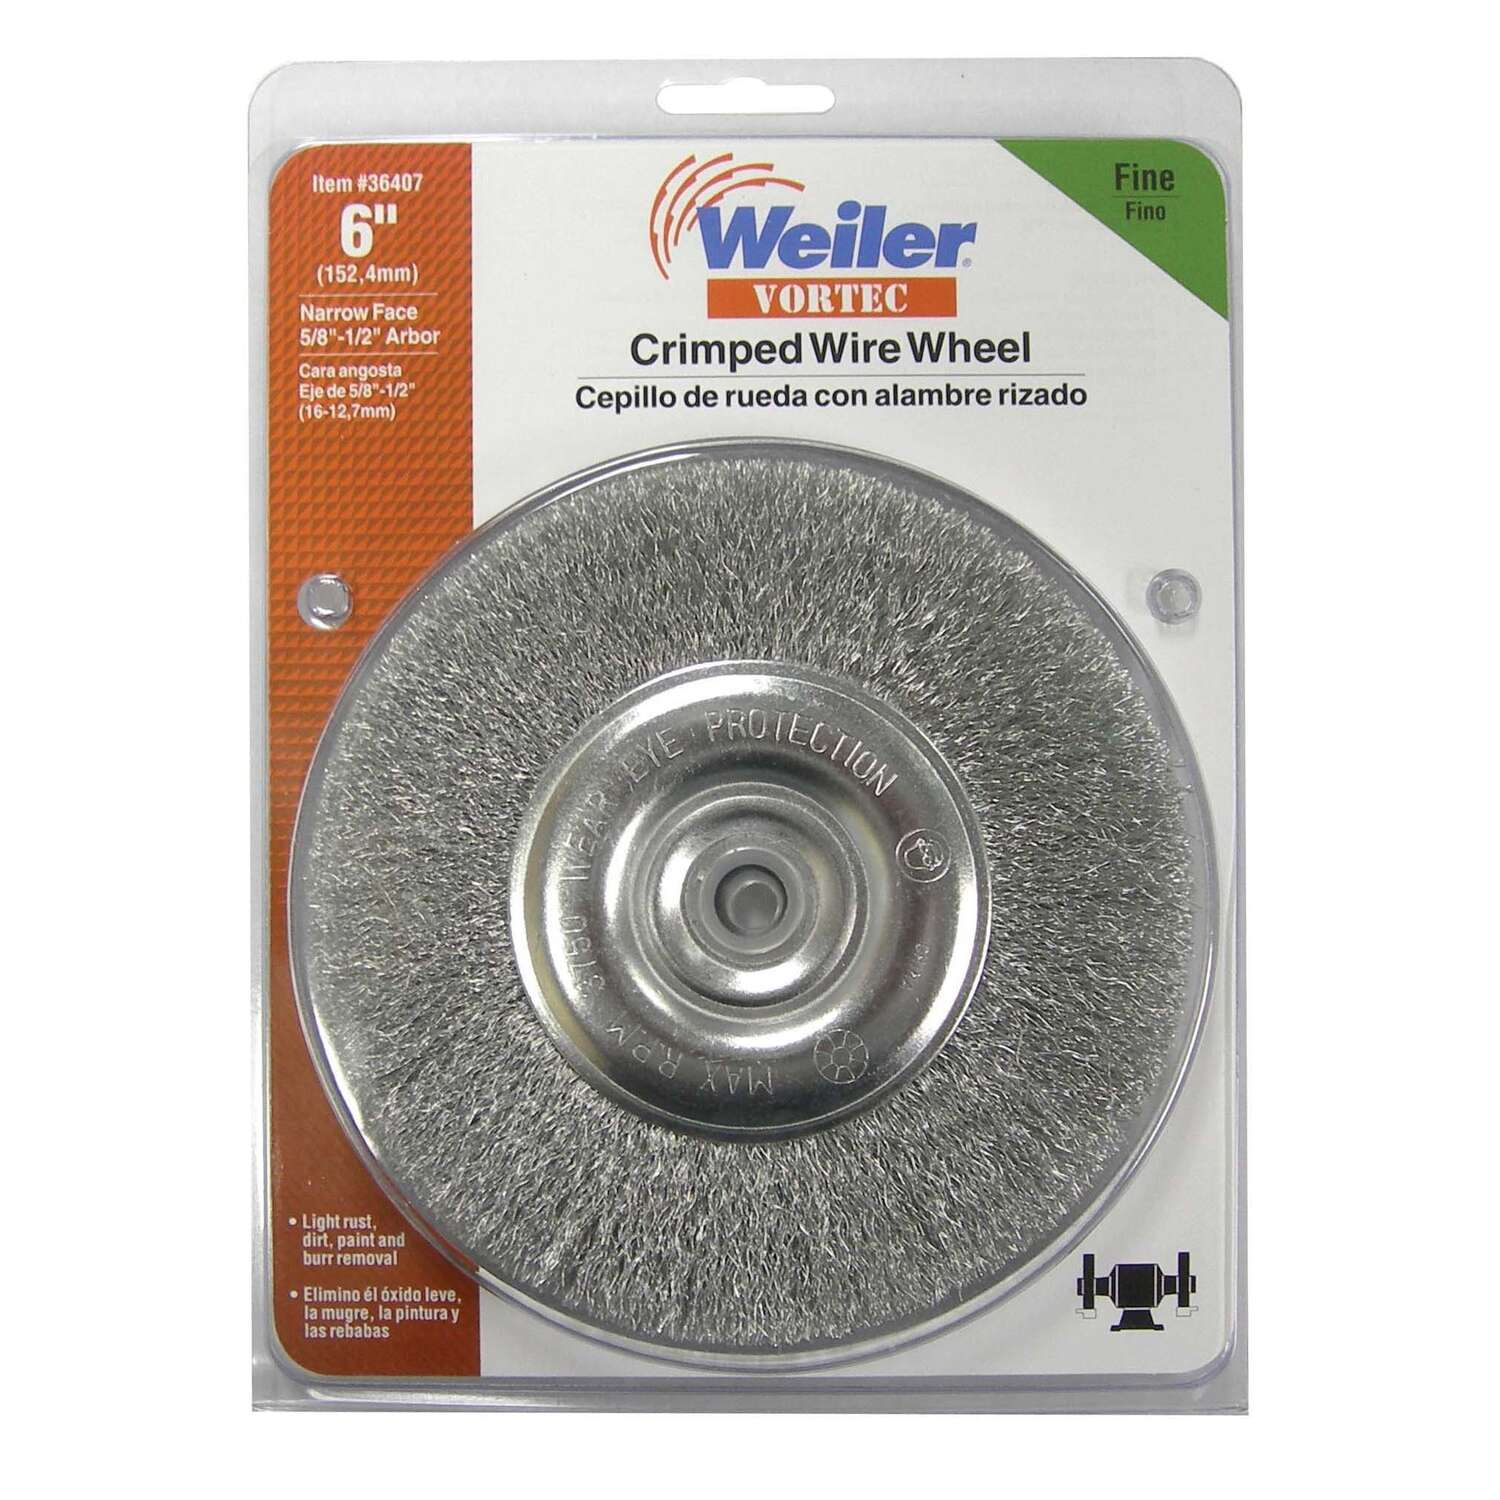 Weiler  Vortec  6 in. Fine  Crimped  Wire Wheel  Carbon Steel  3750 rpm 1 pc.